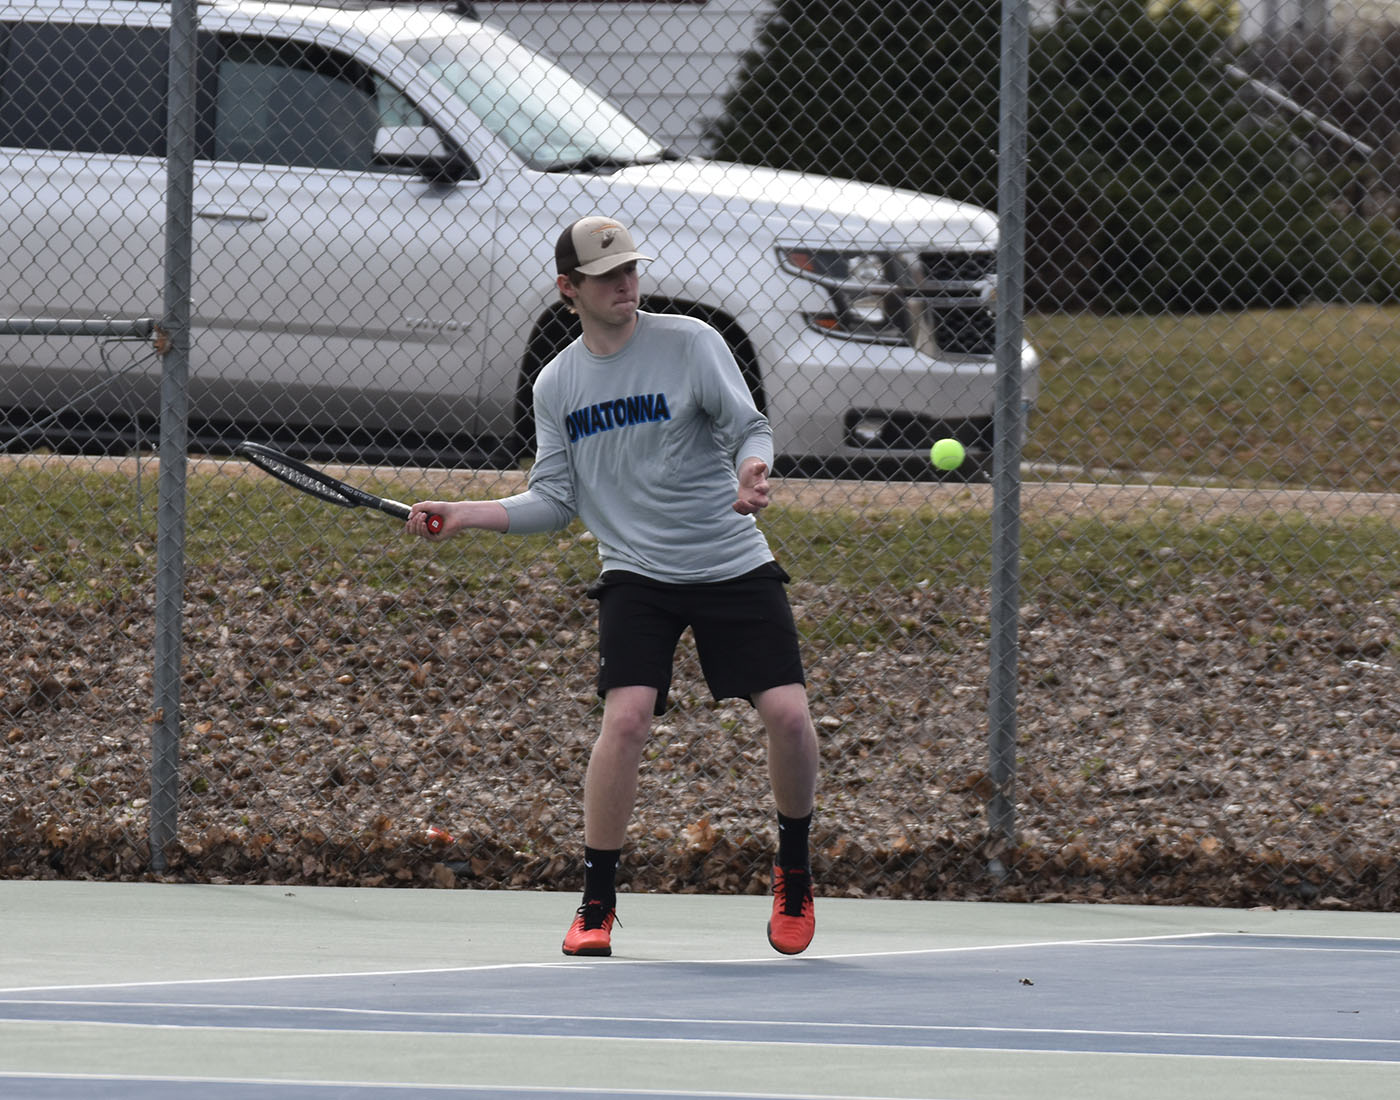 Senior captain Cody Bussert hits a forehand during his match